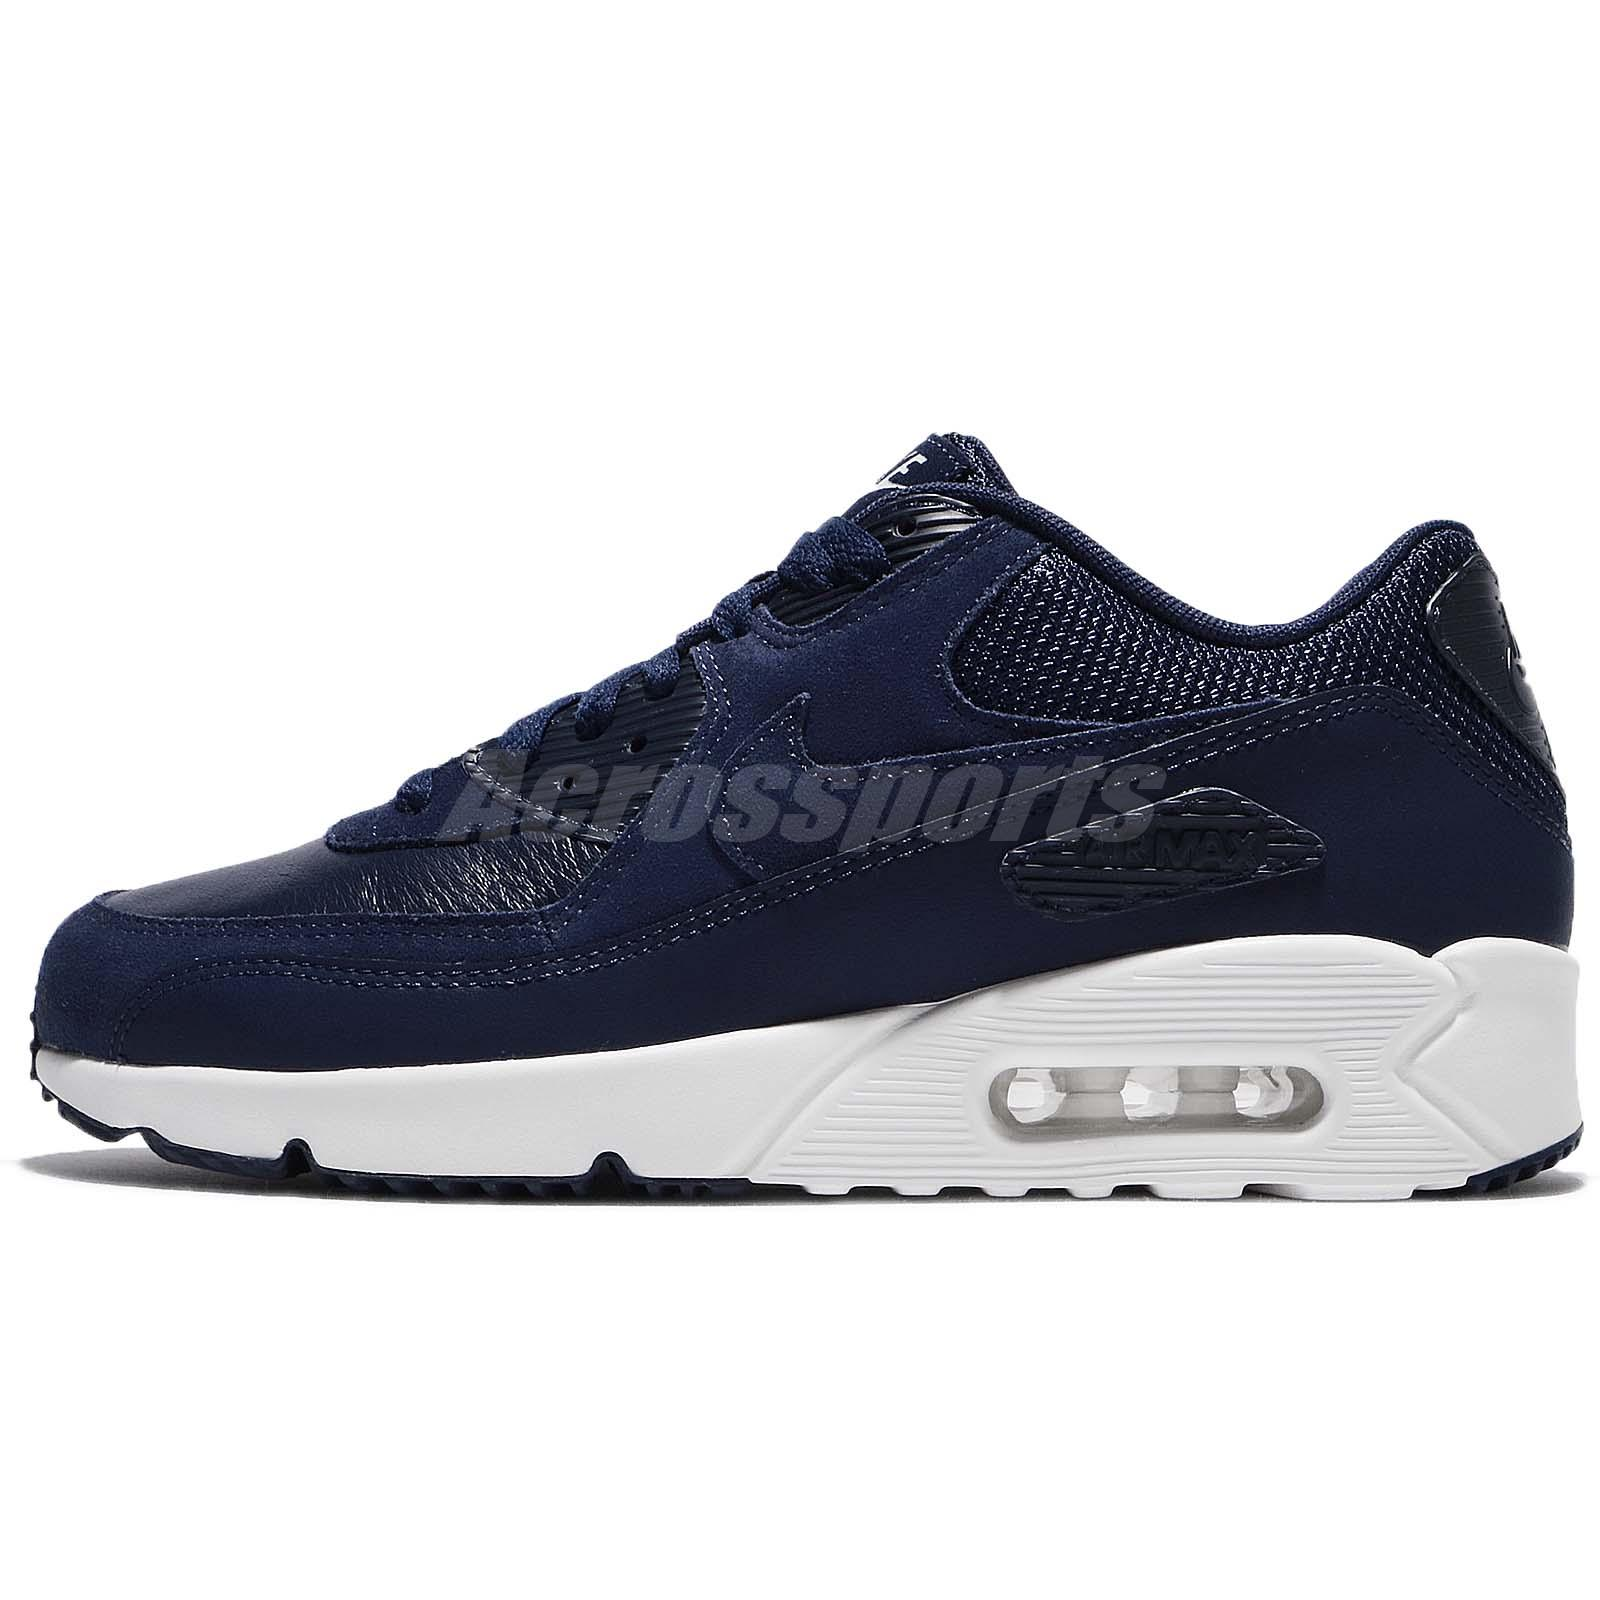 new style 0c560 a4c02 ... italy nike air max 90 ultra 2.0 ltr leather midnight navy men running  924447 400 c8736 ...